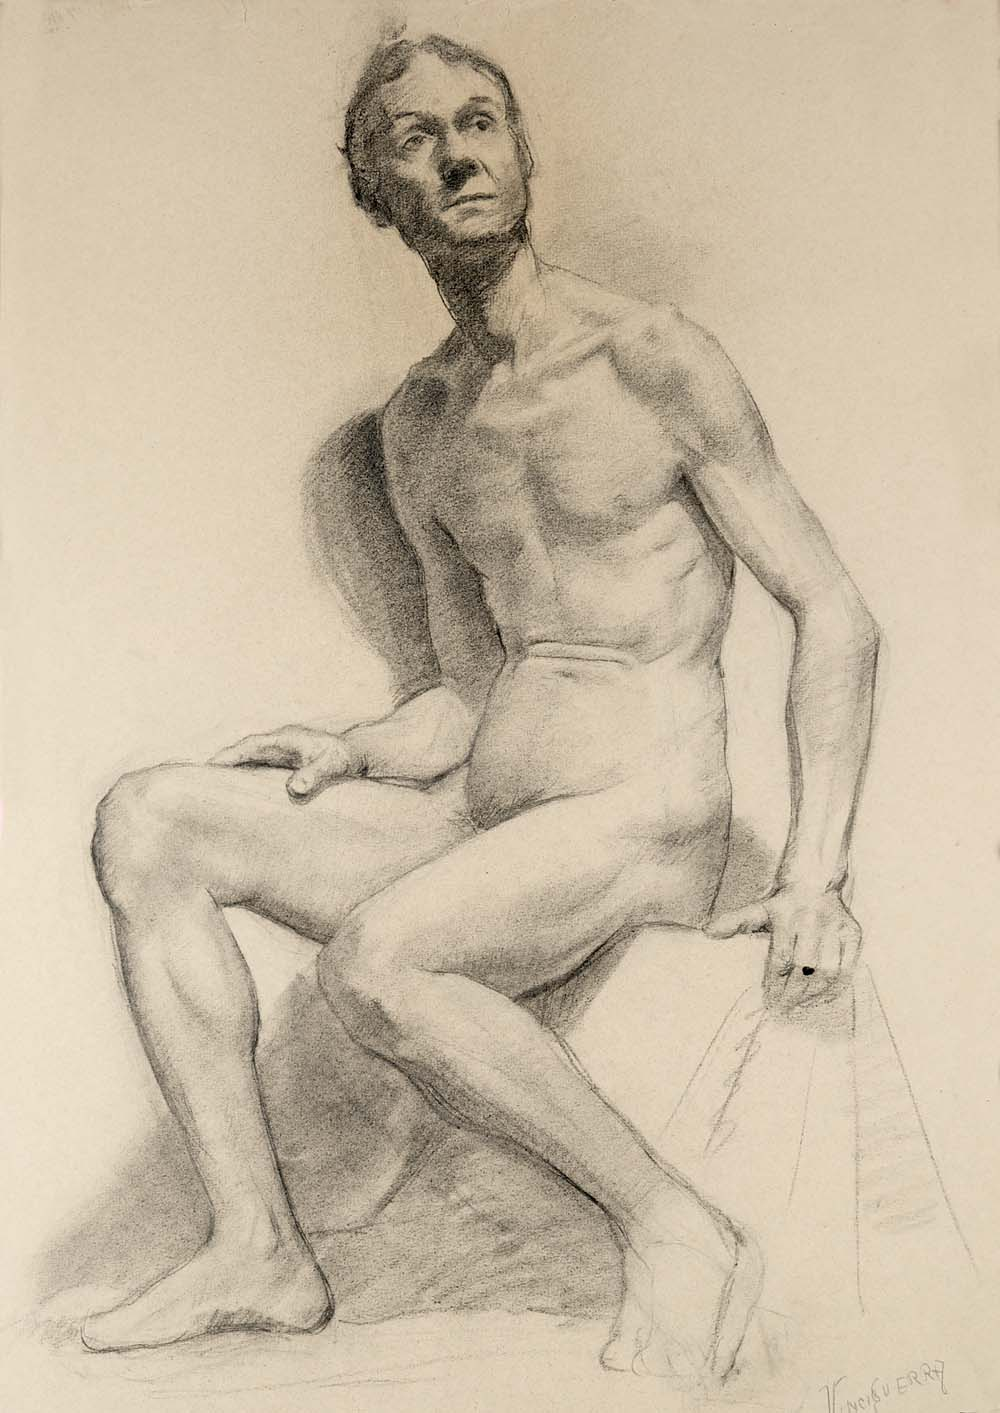 Exhibit: Carlo Vinci's Student Life Drawing